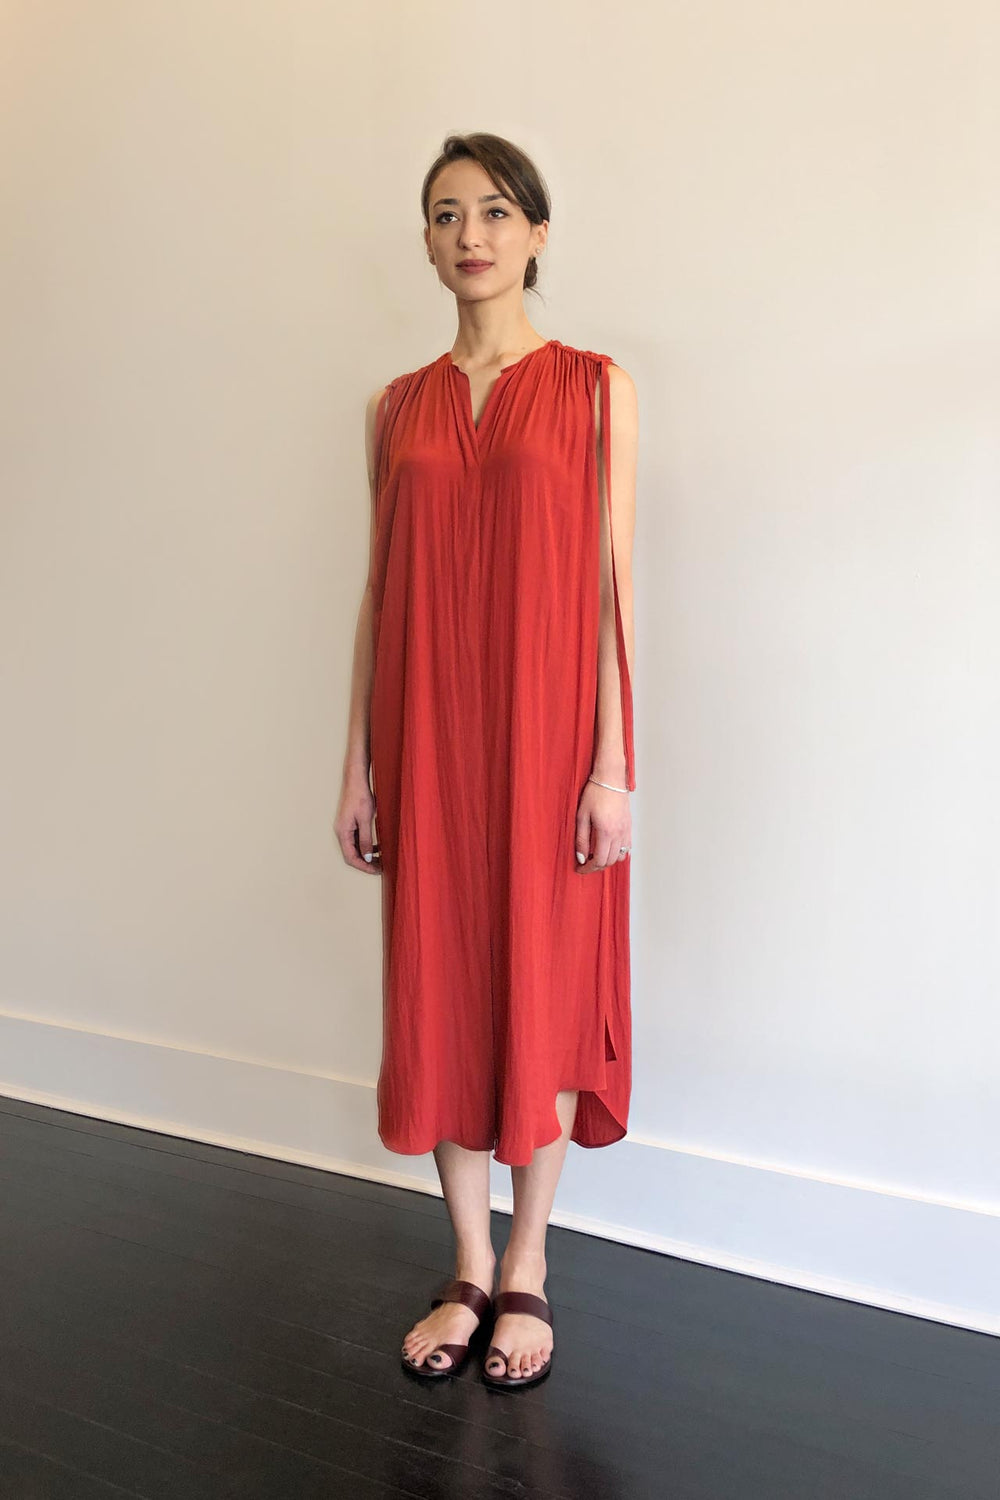 Fashion Designer CARL KAPP collection | Patatran Onesize Fits All cocktail dress Orange | Sydney Australia